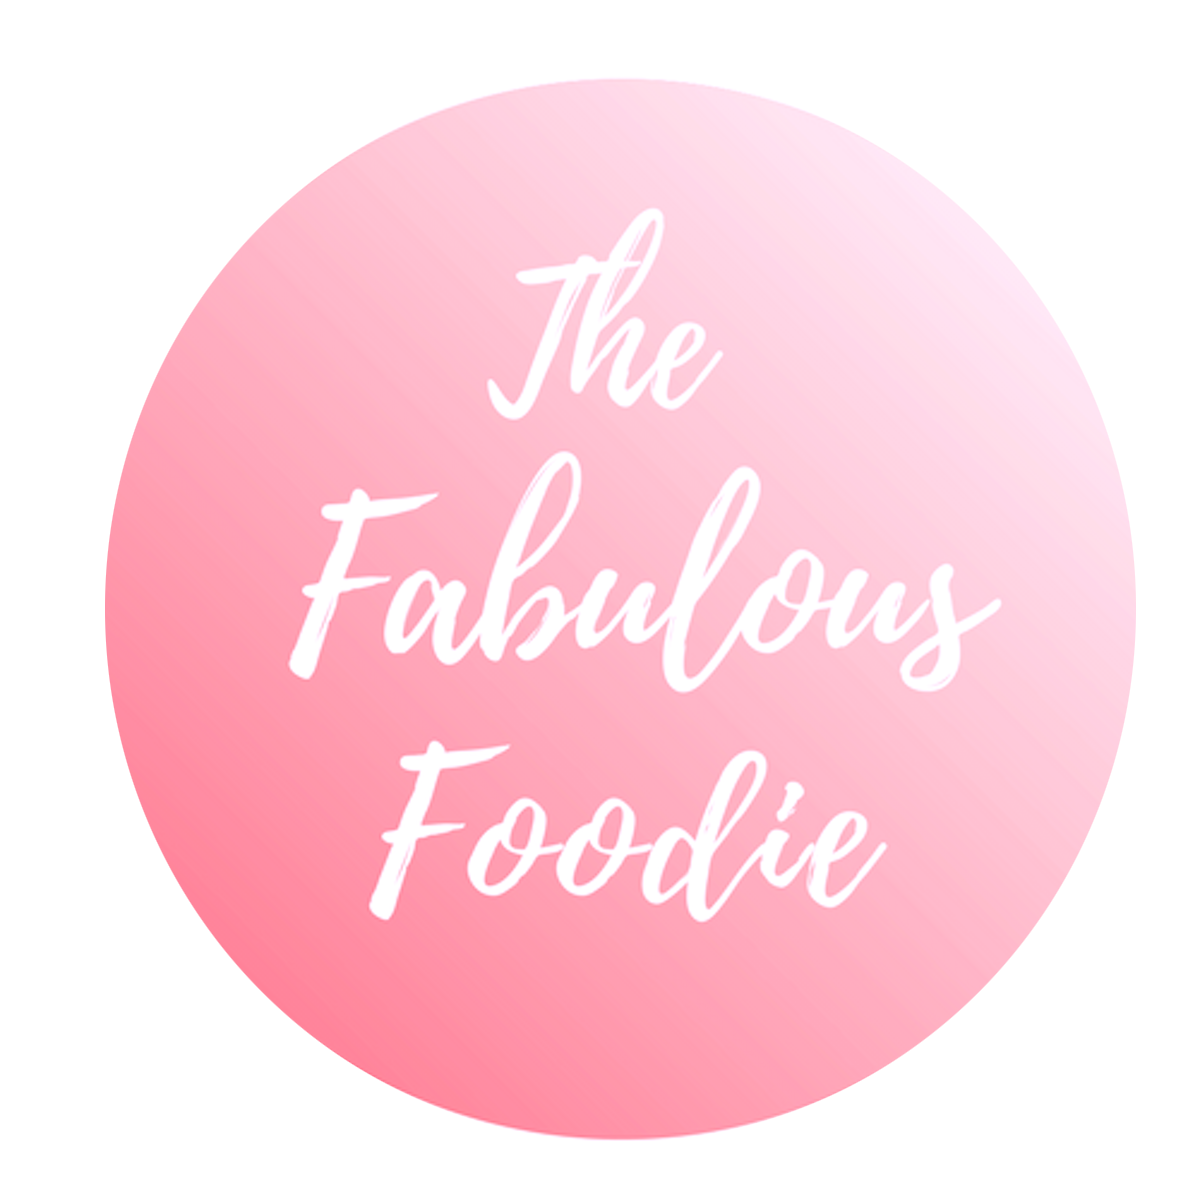 The Fabulous Foodie